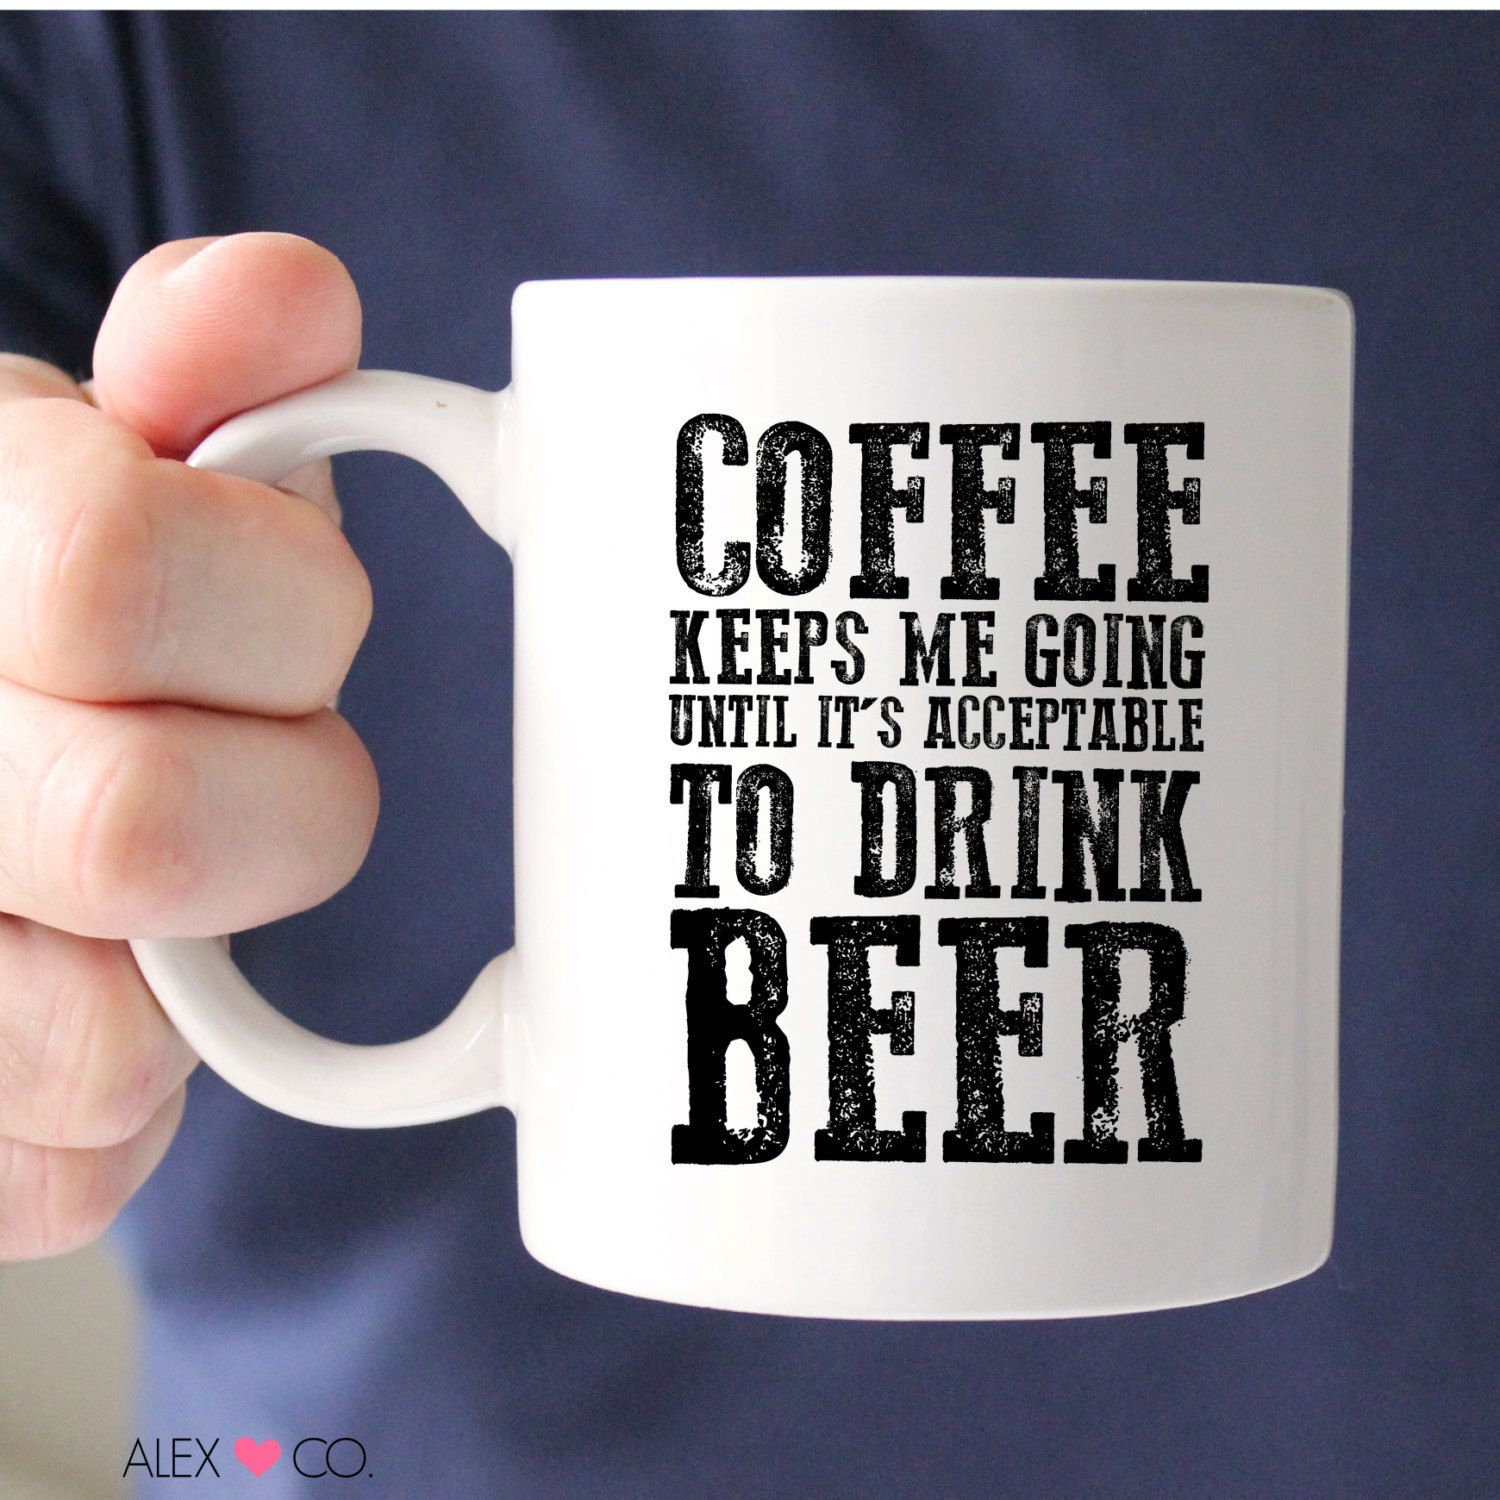 Funny Quotes: Coffee Cup Quotes and Sayings #funny #funnyquotes 40 funny coffee quotes and sayings freshmorningquotes funny coffee quotes and coffee sayings is the best collection of famous quotes about coffee drinkers. some of you might laugh when i say about coffee lovers but some guys just like me cant even think of starting a day with out my favorite cup of coffee on table. and there is nothing funny about coffee except these quotes., 100 coffee quotes to assist your caffeinated musings #quotesaboutcoffee